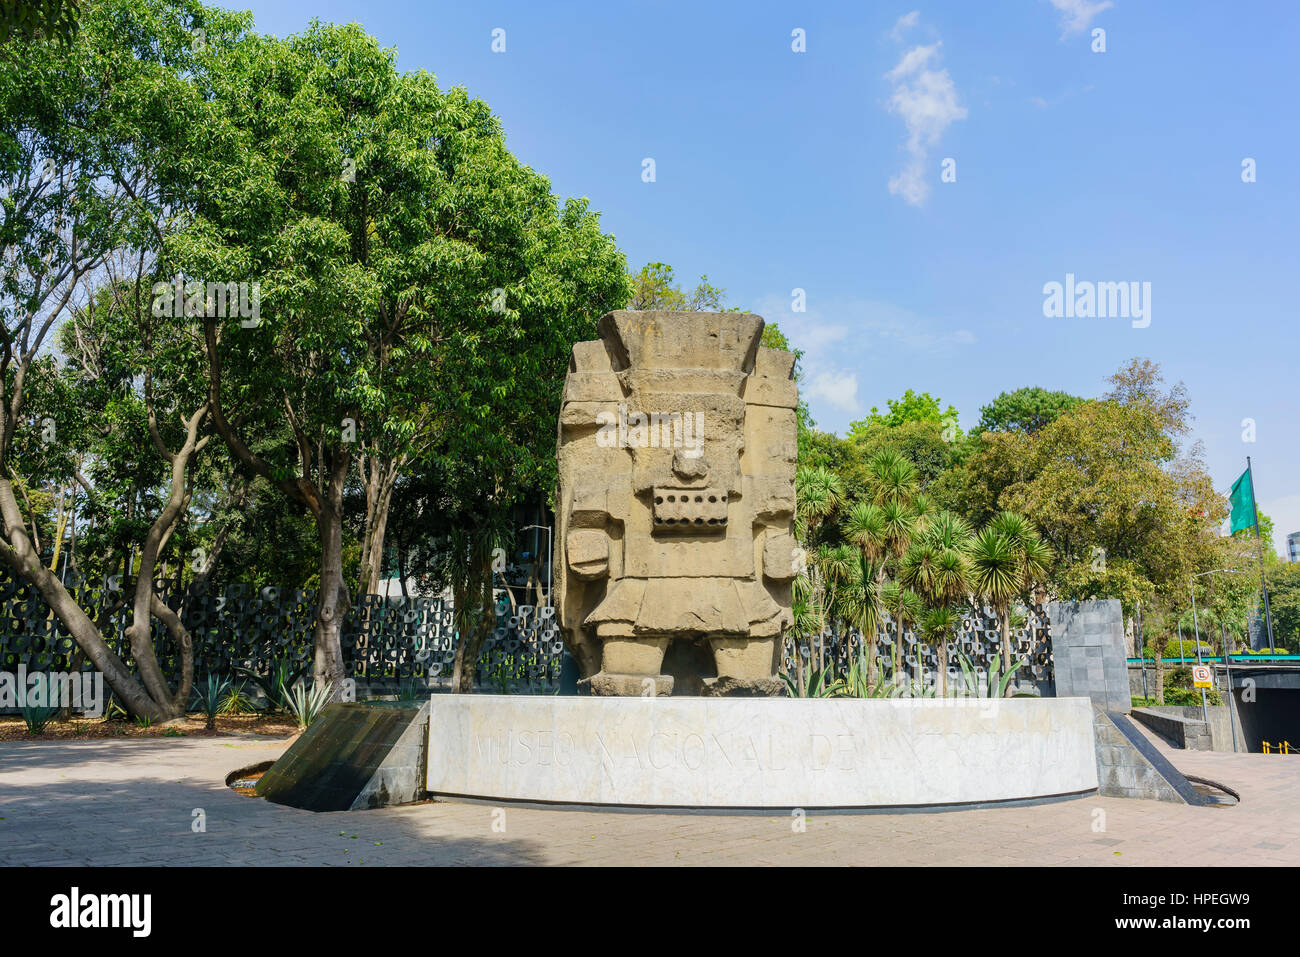 Mexico City, FEB 16: Entrance of the National Museum of Anthropology (Museo Nacional de Antropologia, MNA) on FEB - Stock Image